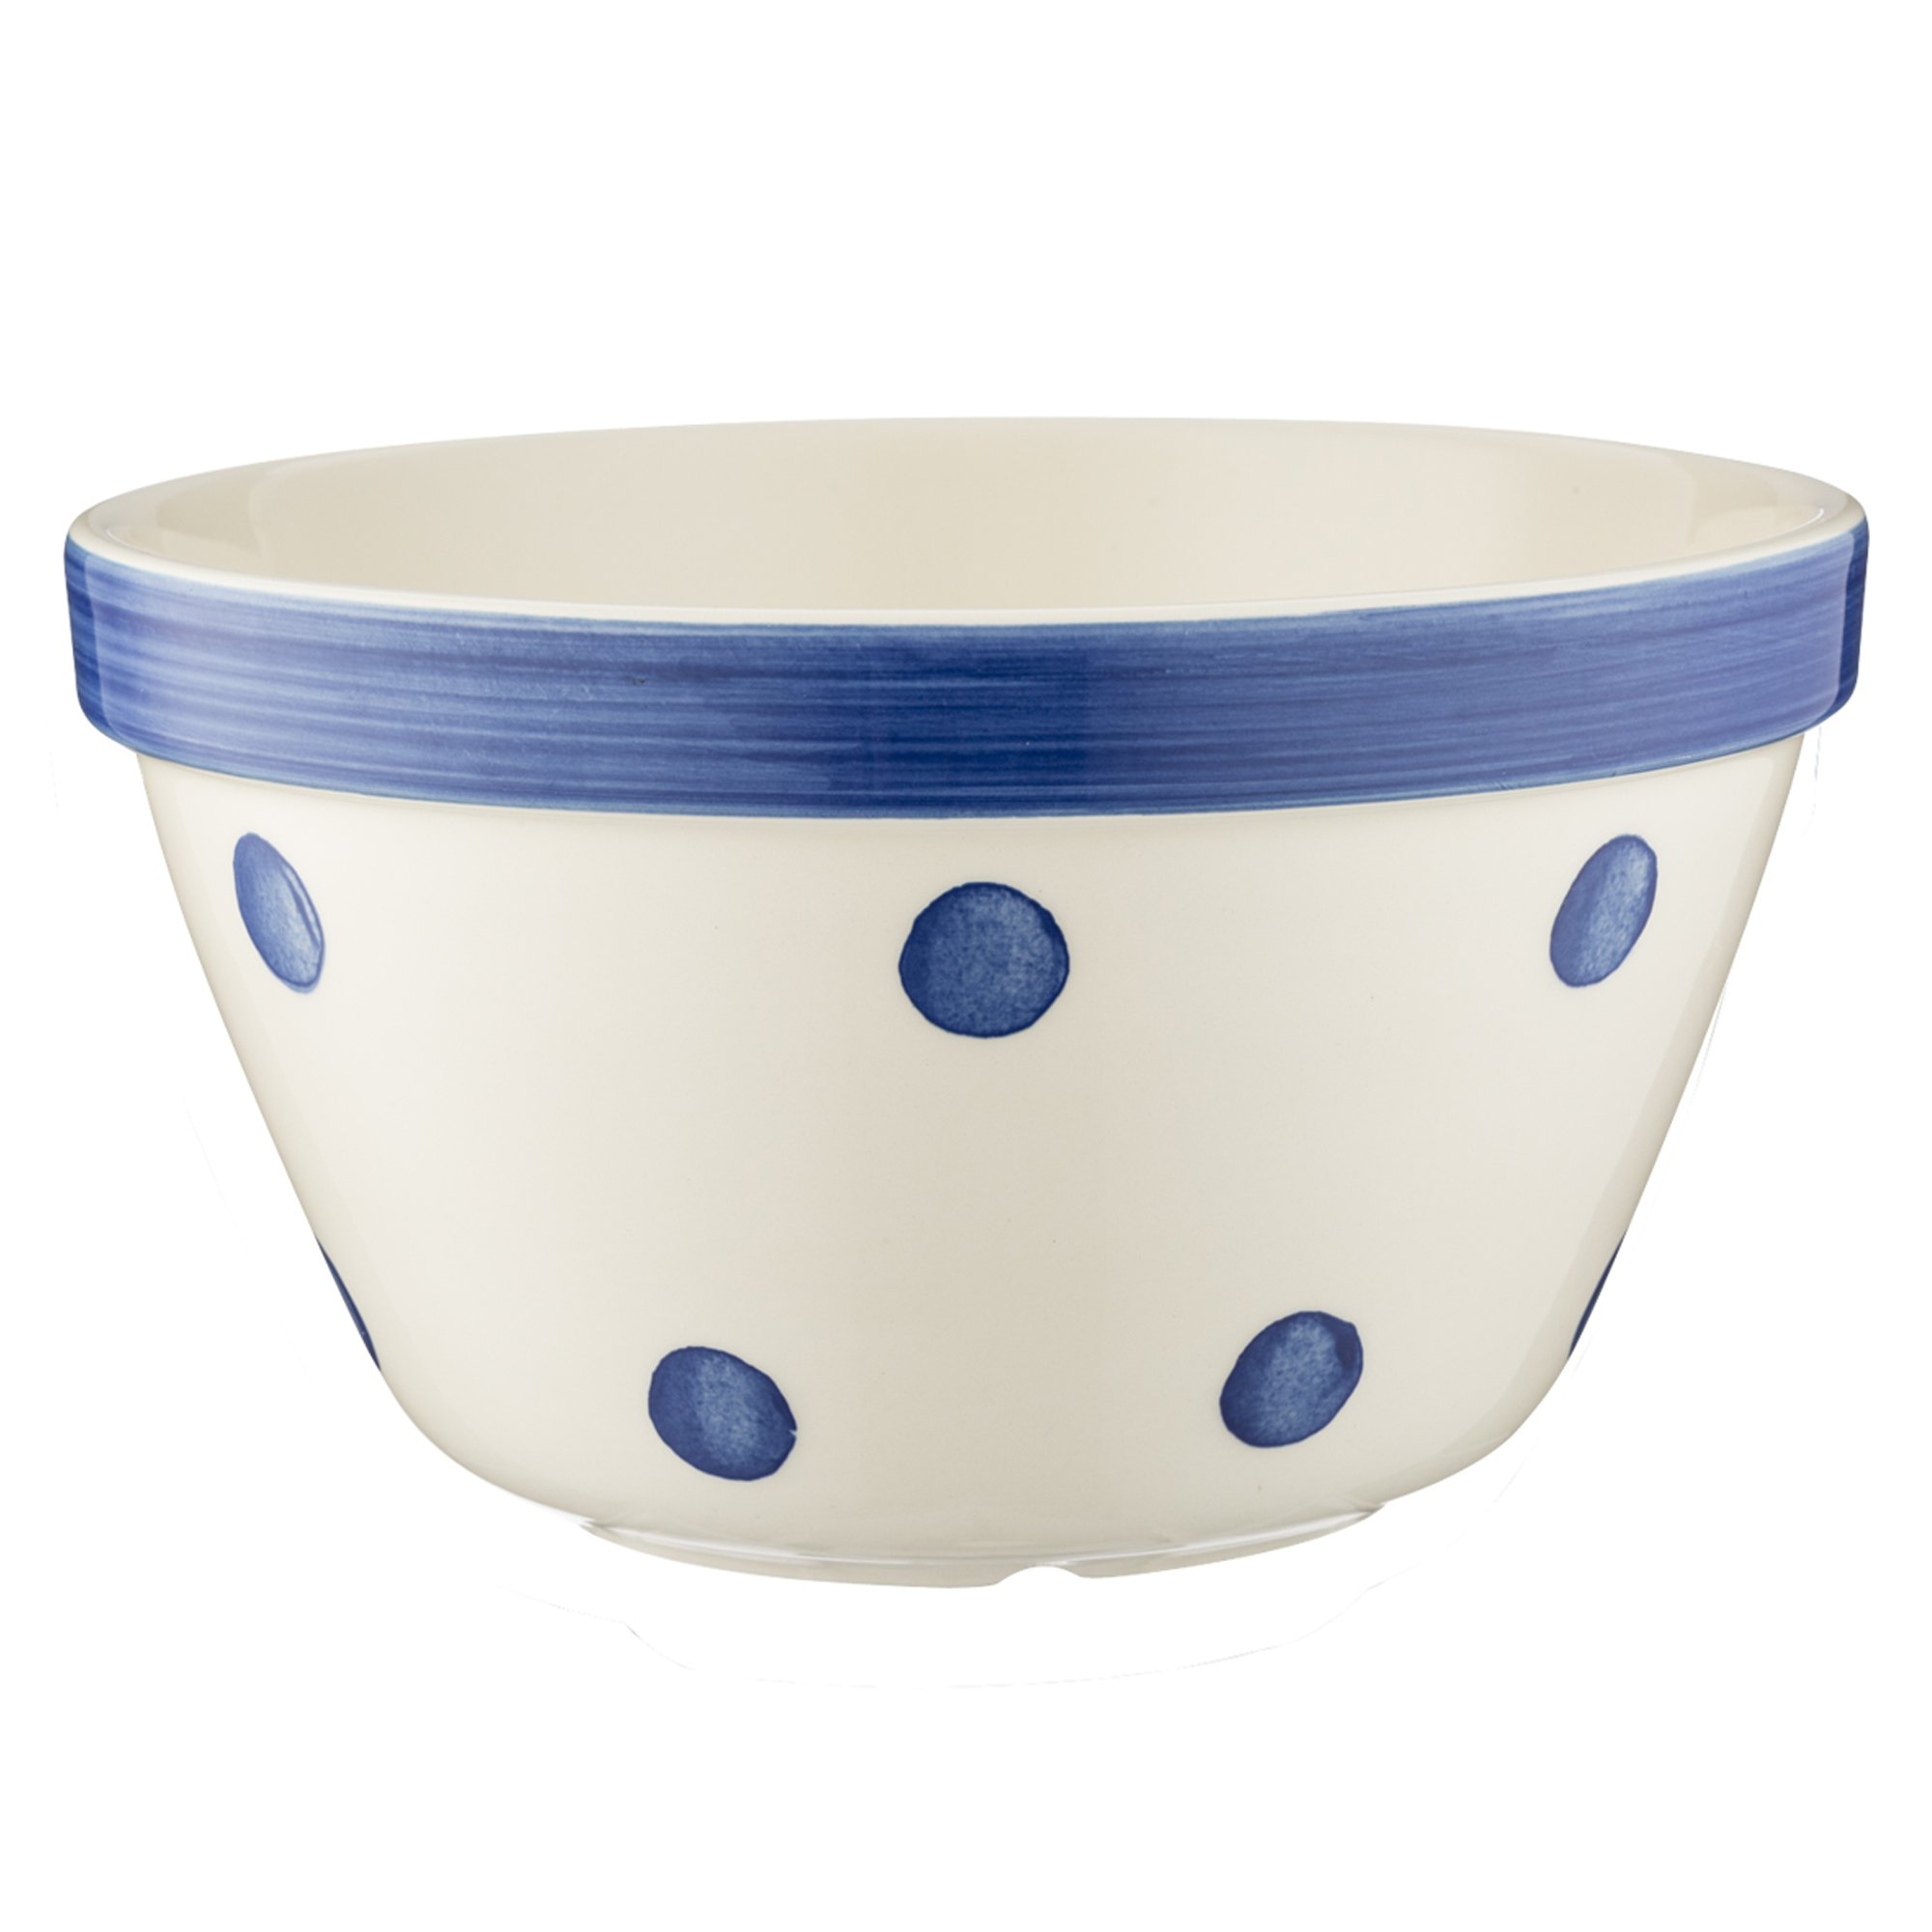 Mason Cash Spots All Purpose Bowl; Hand Painted; Made From Chip Resistant Earthenware; S30, 6-3/4-Inches by 4-Inches; White with Navy Spots